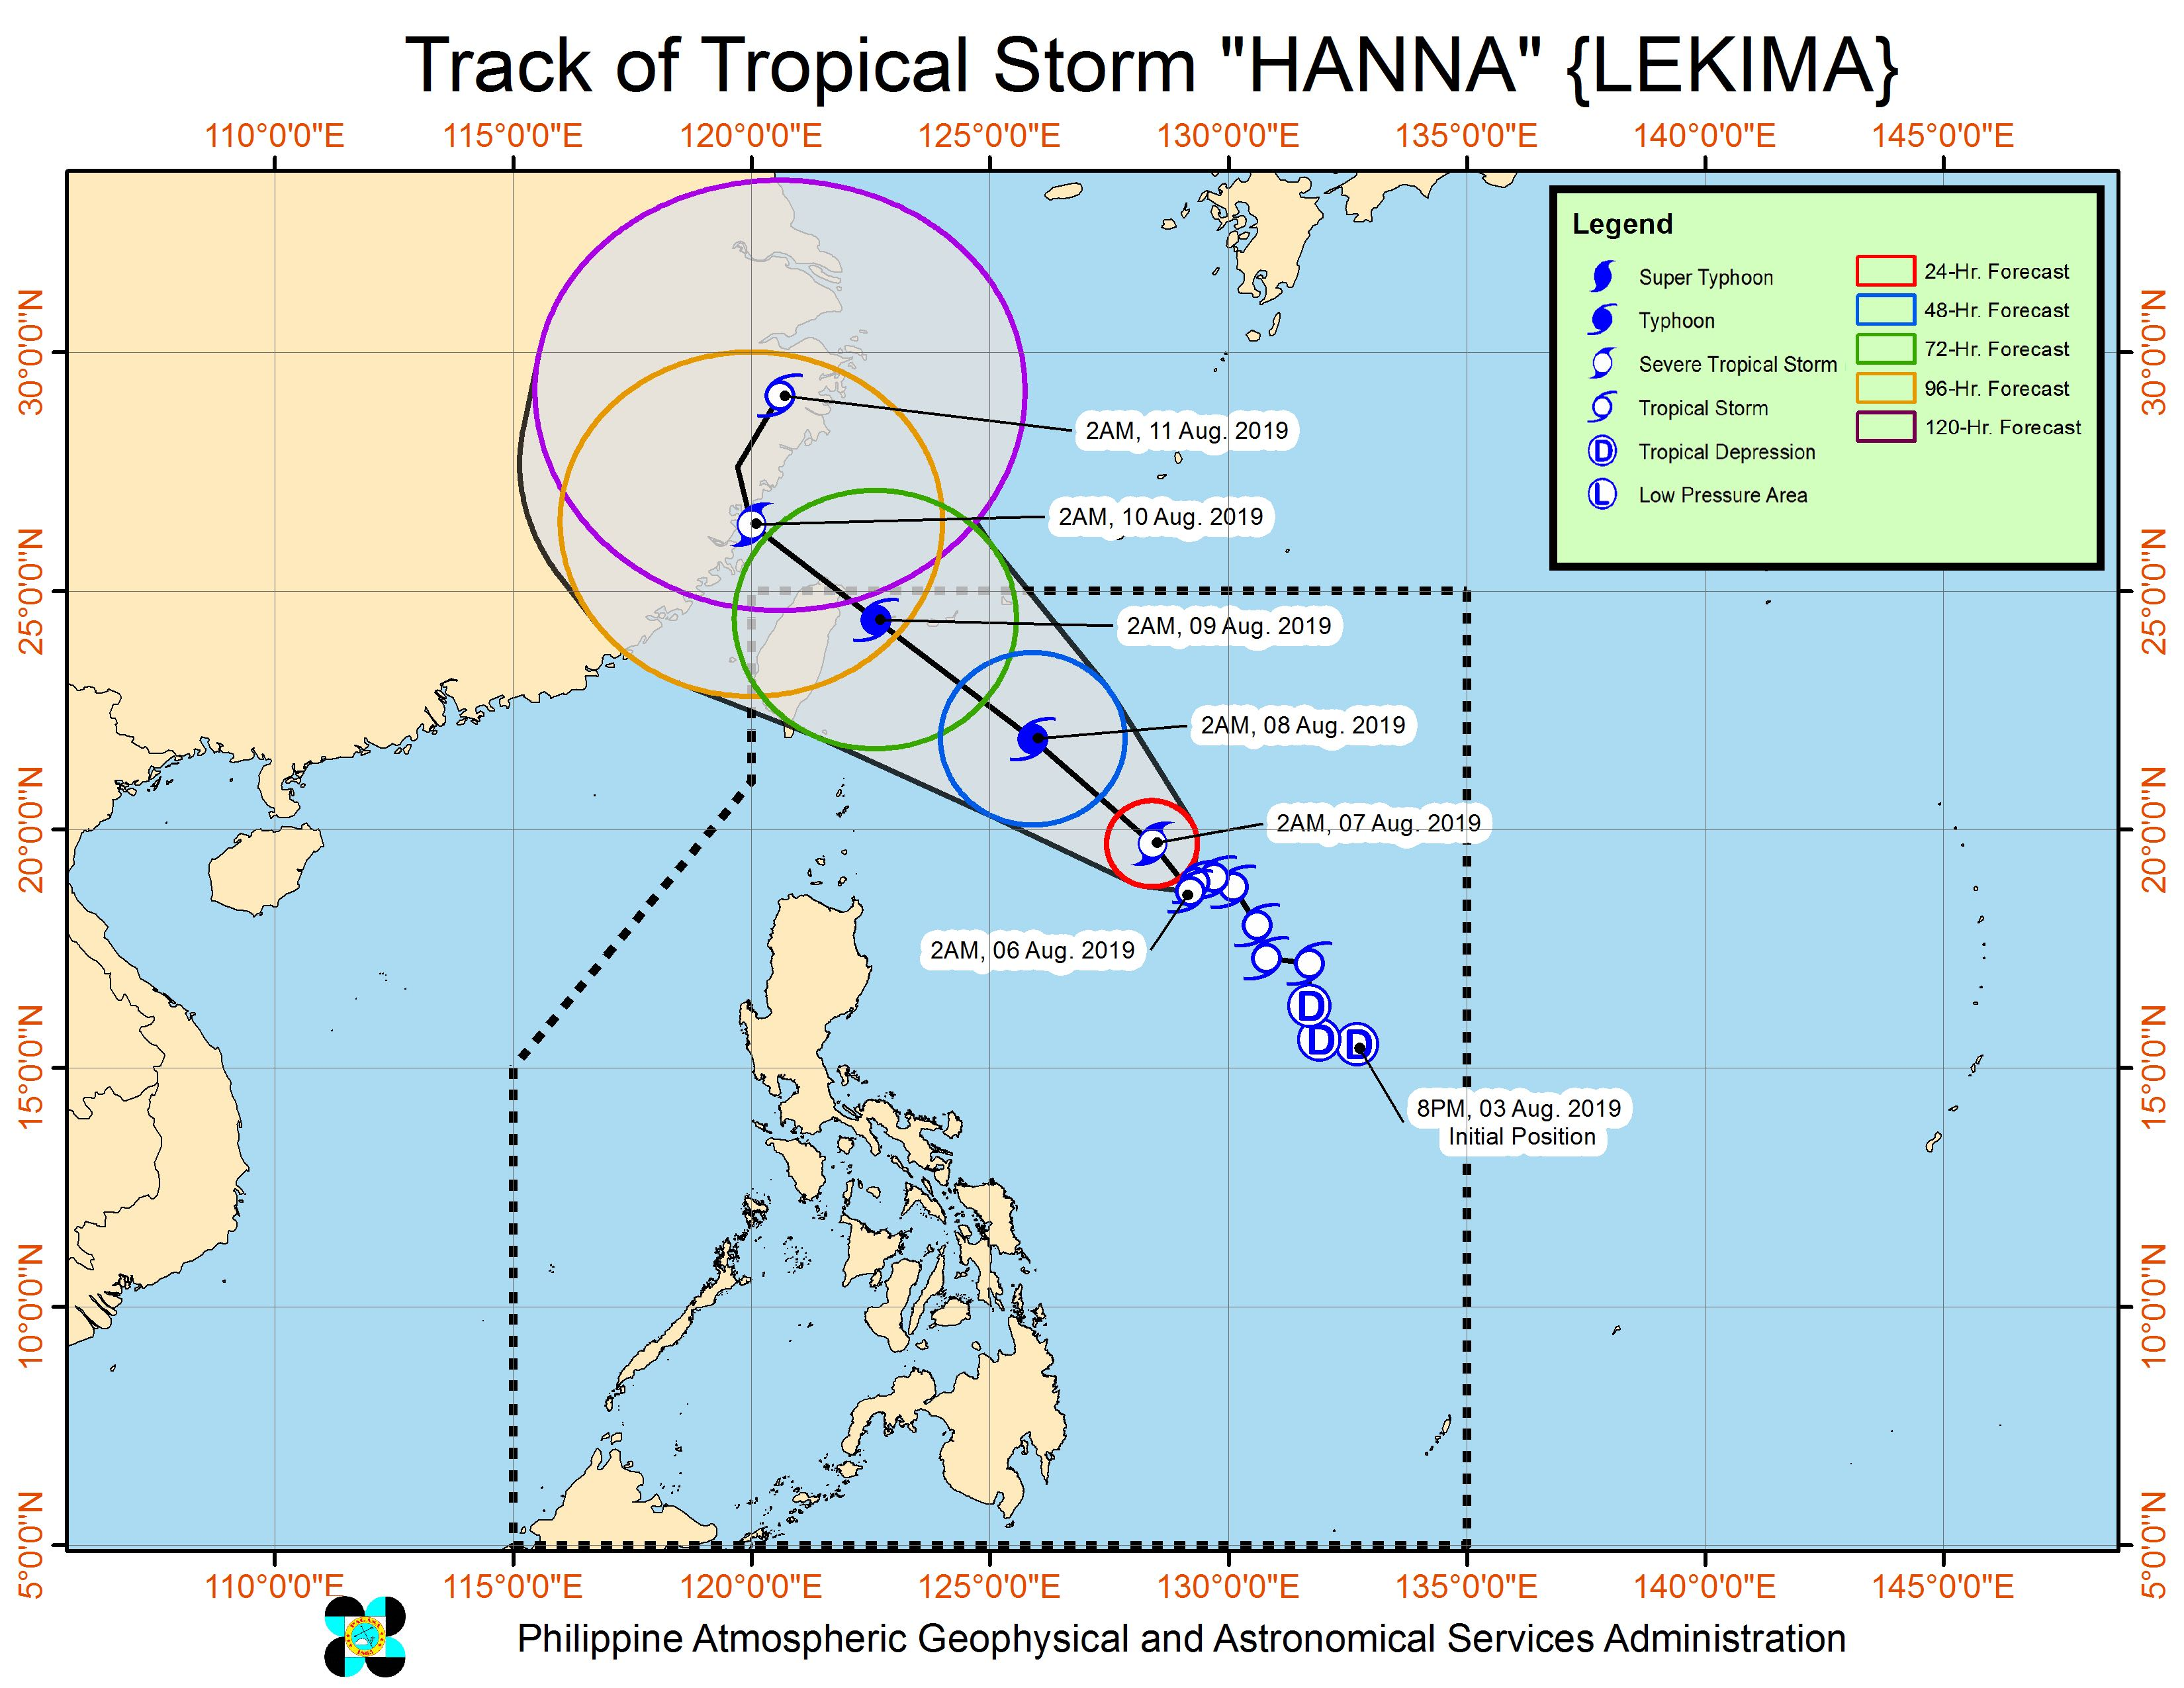 Forecast track of Tropical Storm Hanna (Lekima) as of August 6, 2019, 5 am. Image from PAGASA